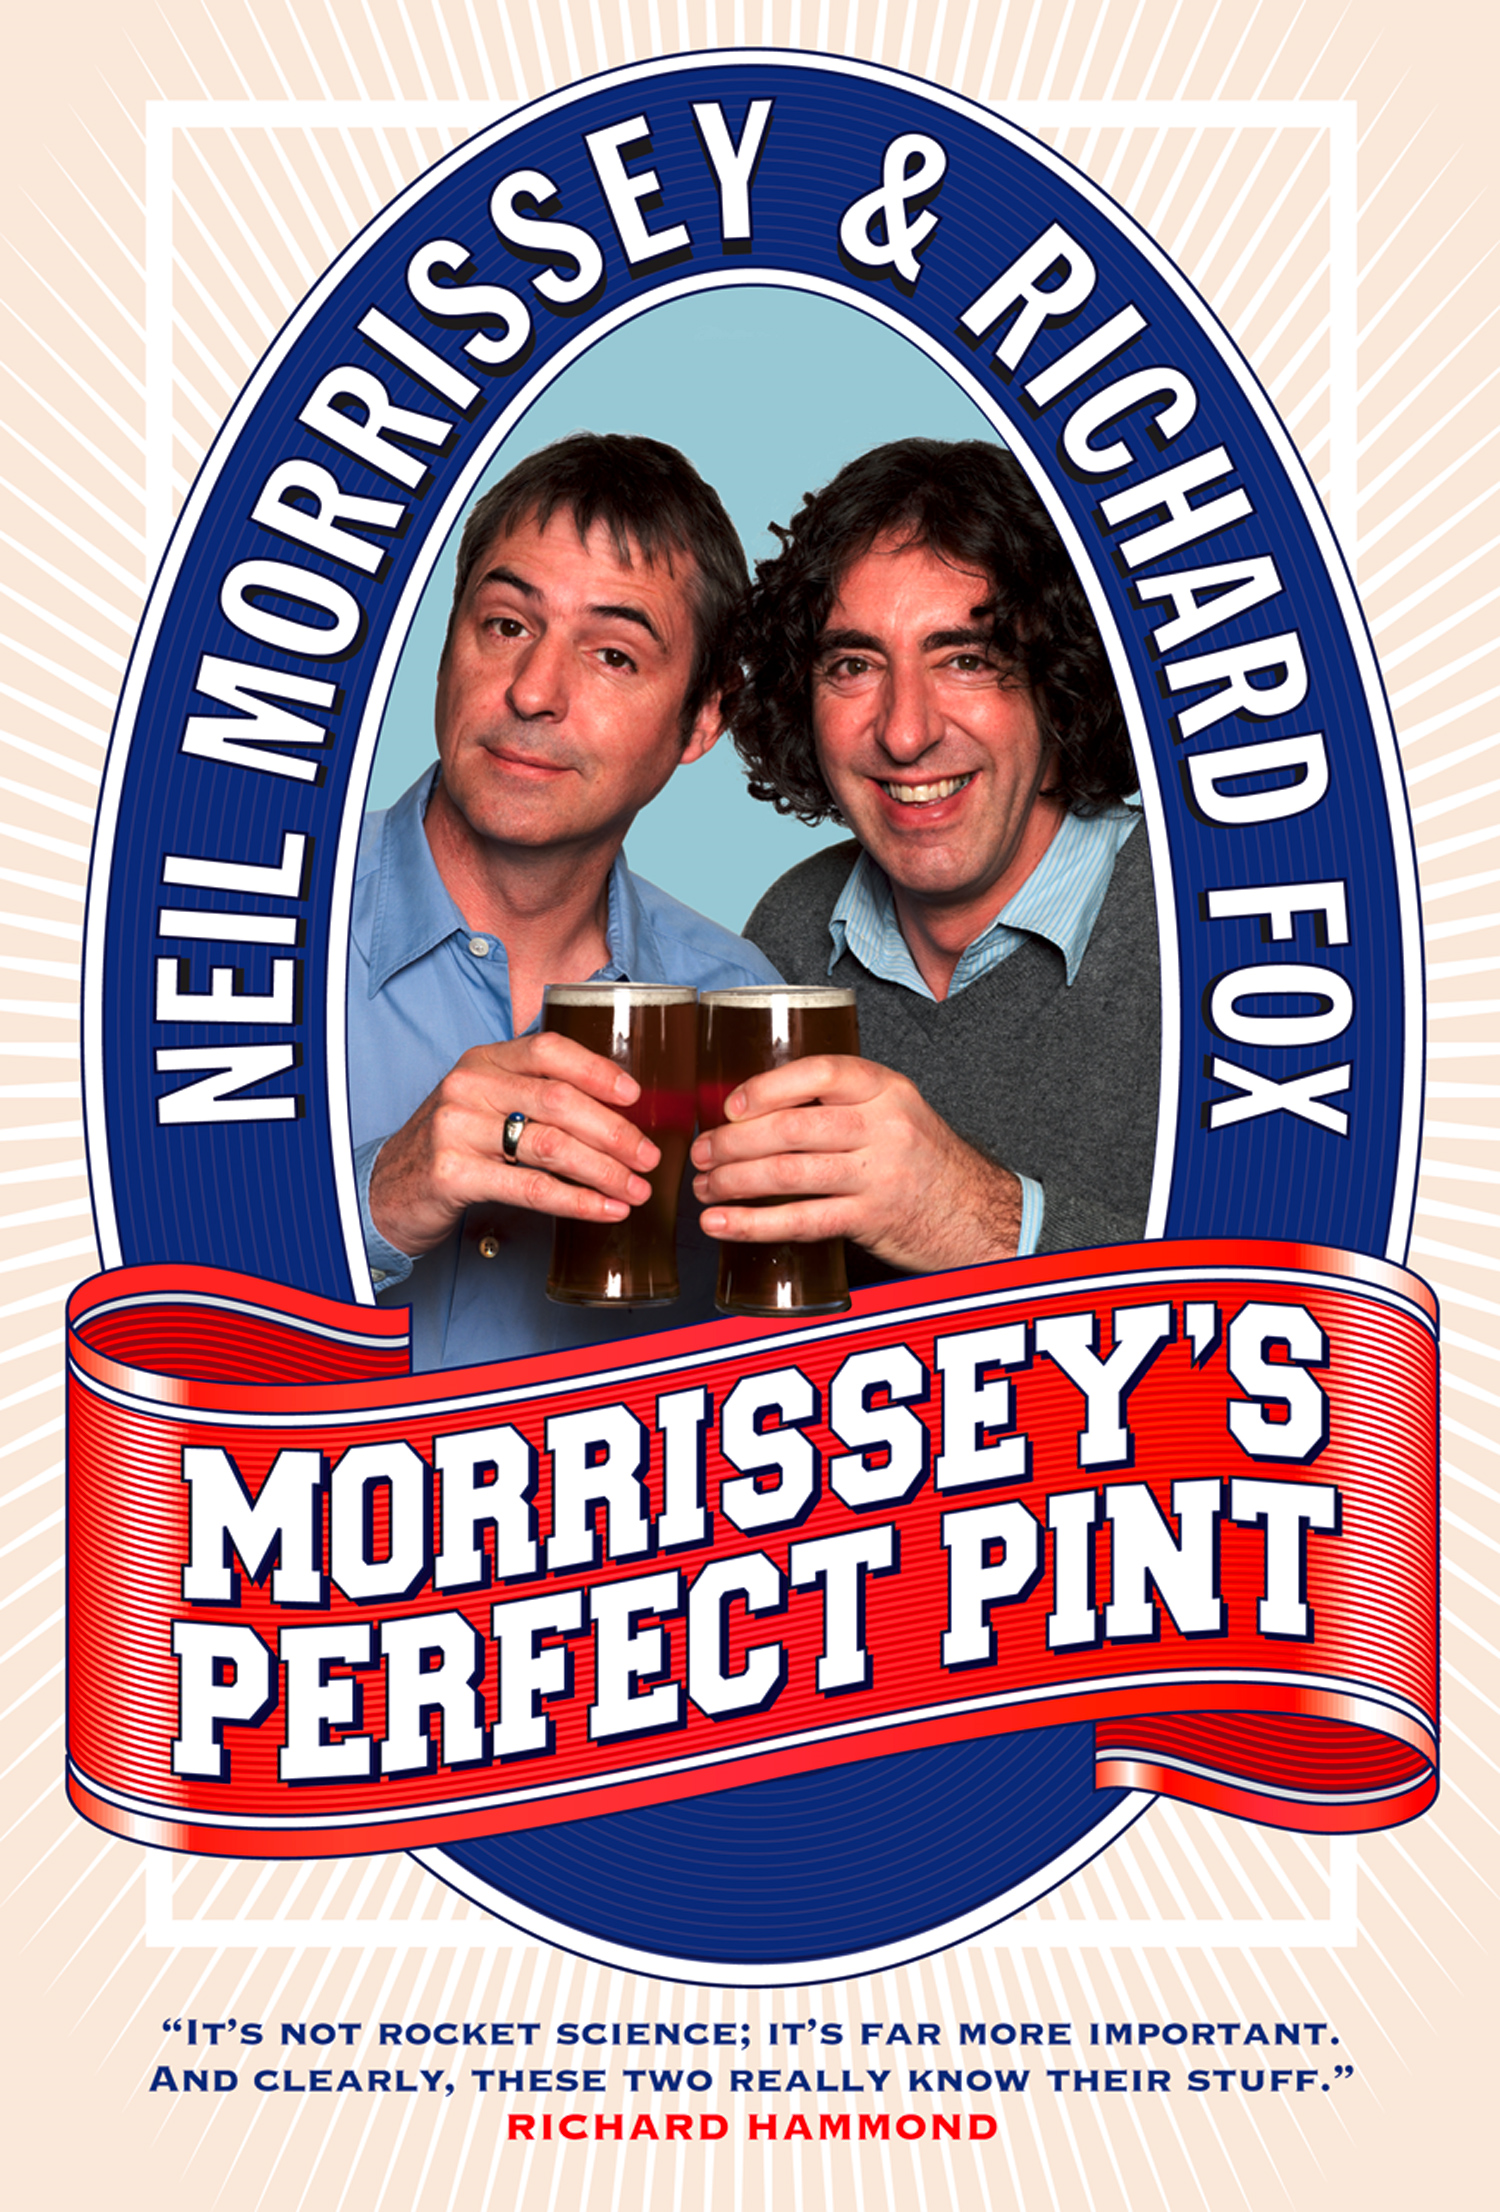 Morrissey?s Perfect Pint